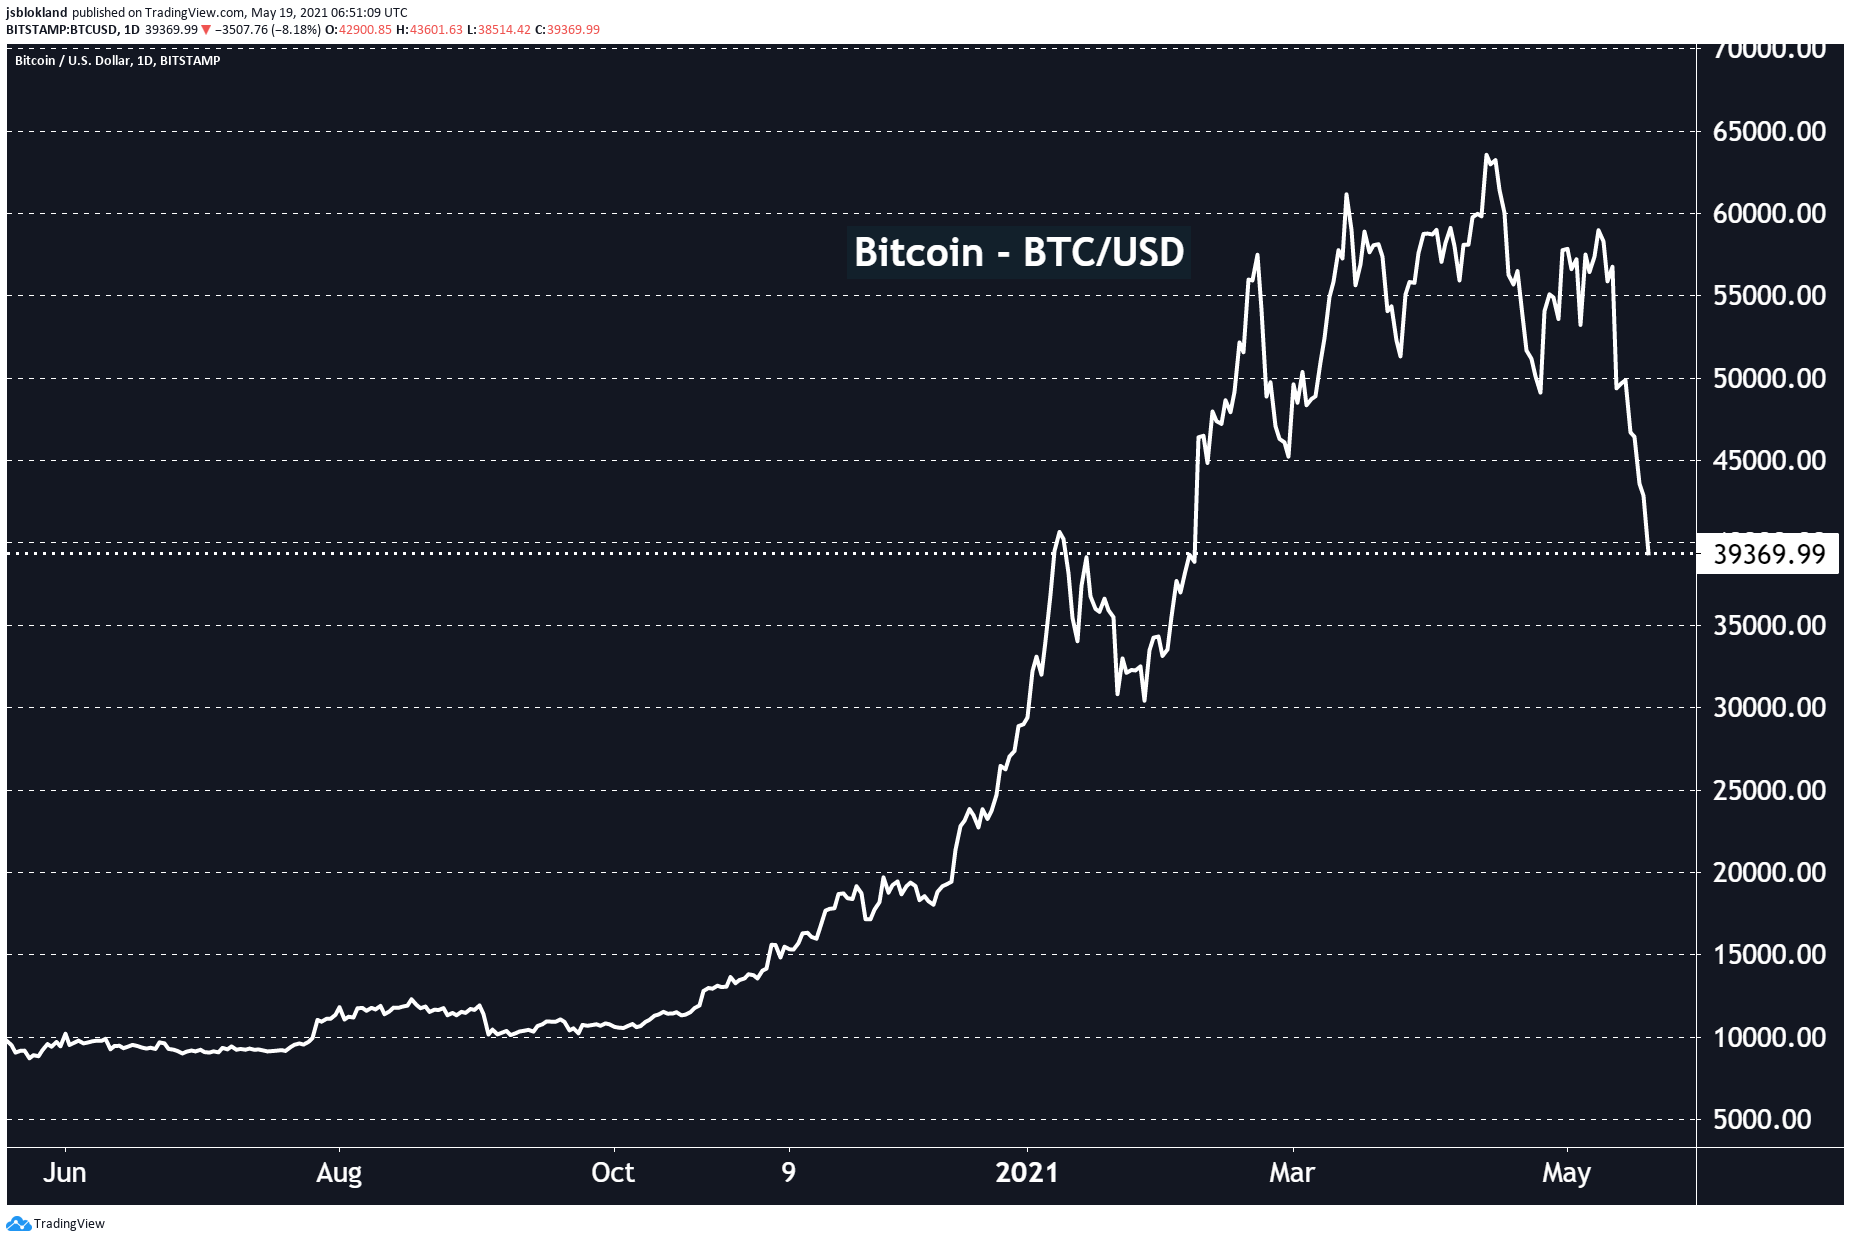 Bitcoin is now at the same level at which Elon Musk announced the Tesla Bitcoin purchase